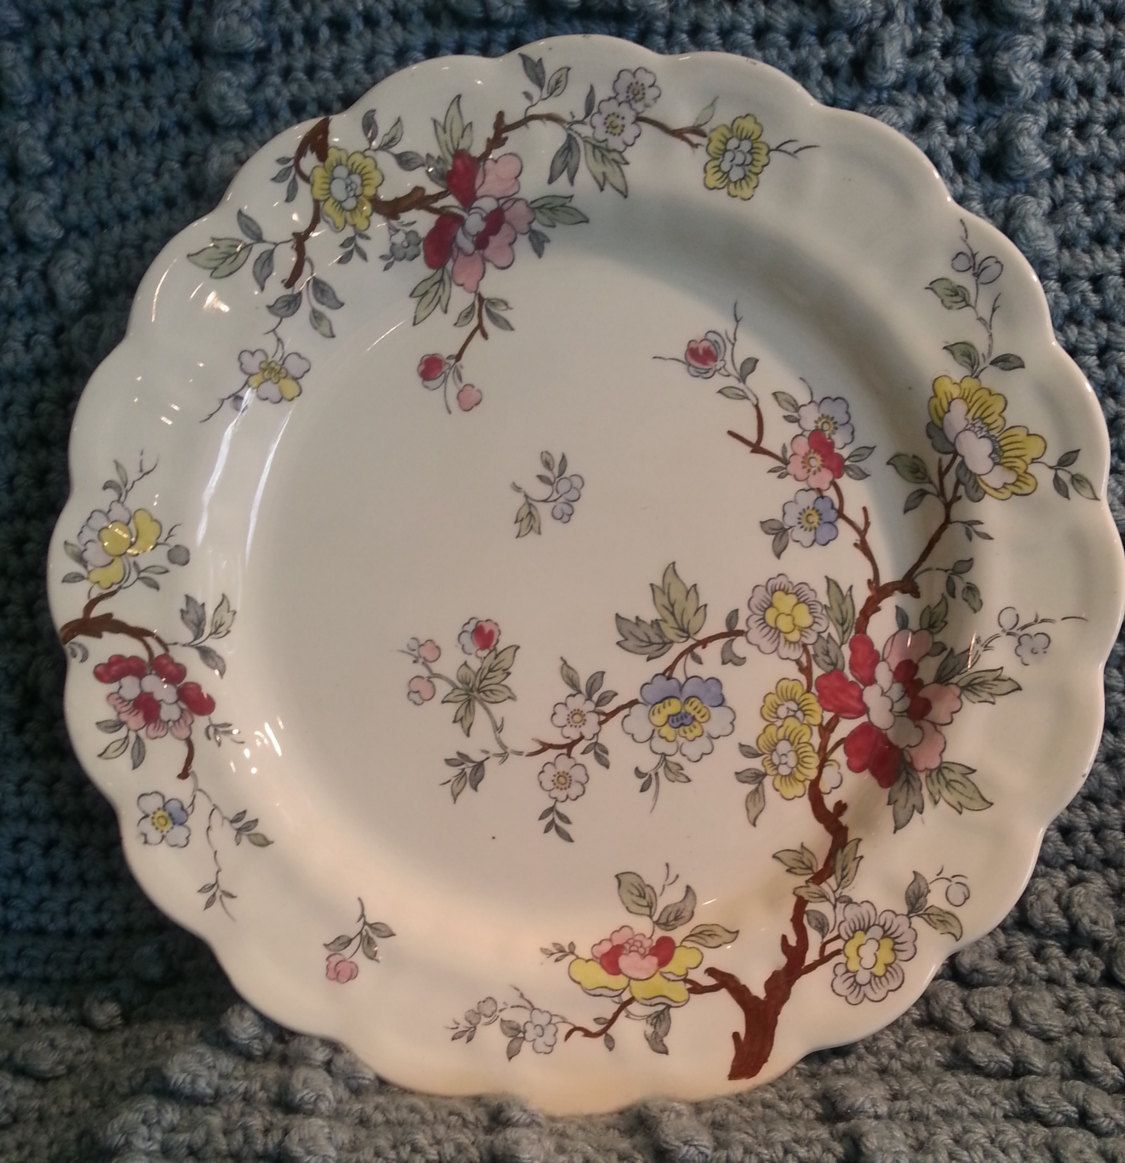 Booths Chinese Tree A8001 Dinner Plate - Made in England - Vintage Plate - Collectible Plate - China Dinner Plate by 60YearsOfLove on Etsy & Booths Chinese Tree A8001 Dinner Plate - Made in England - Vintage ...